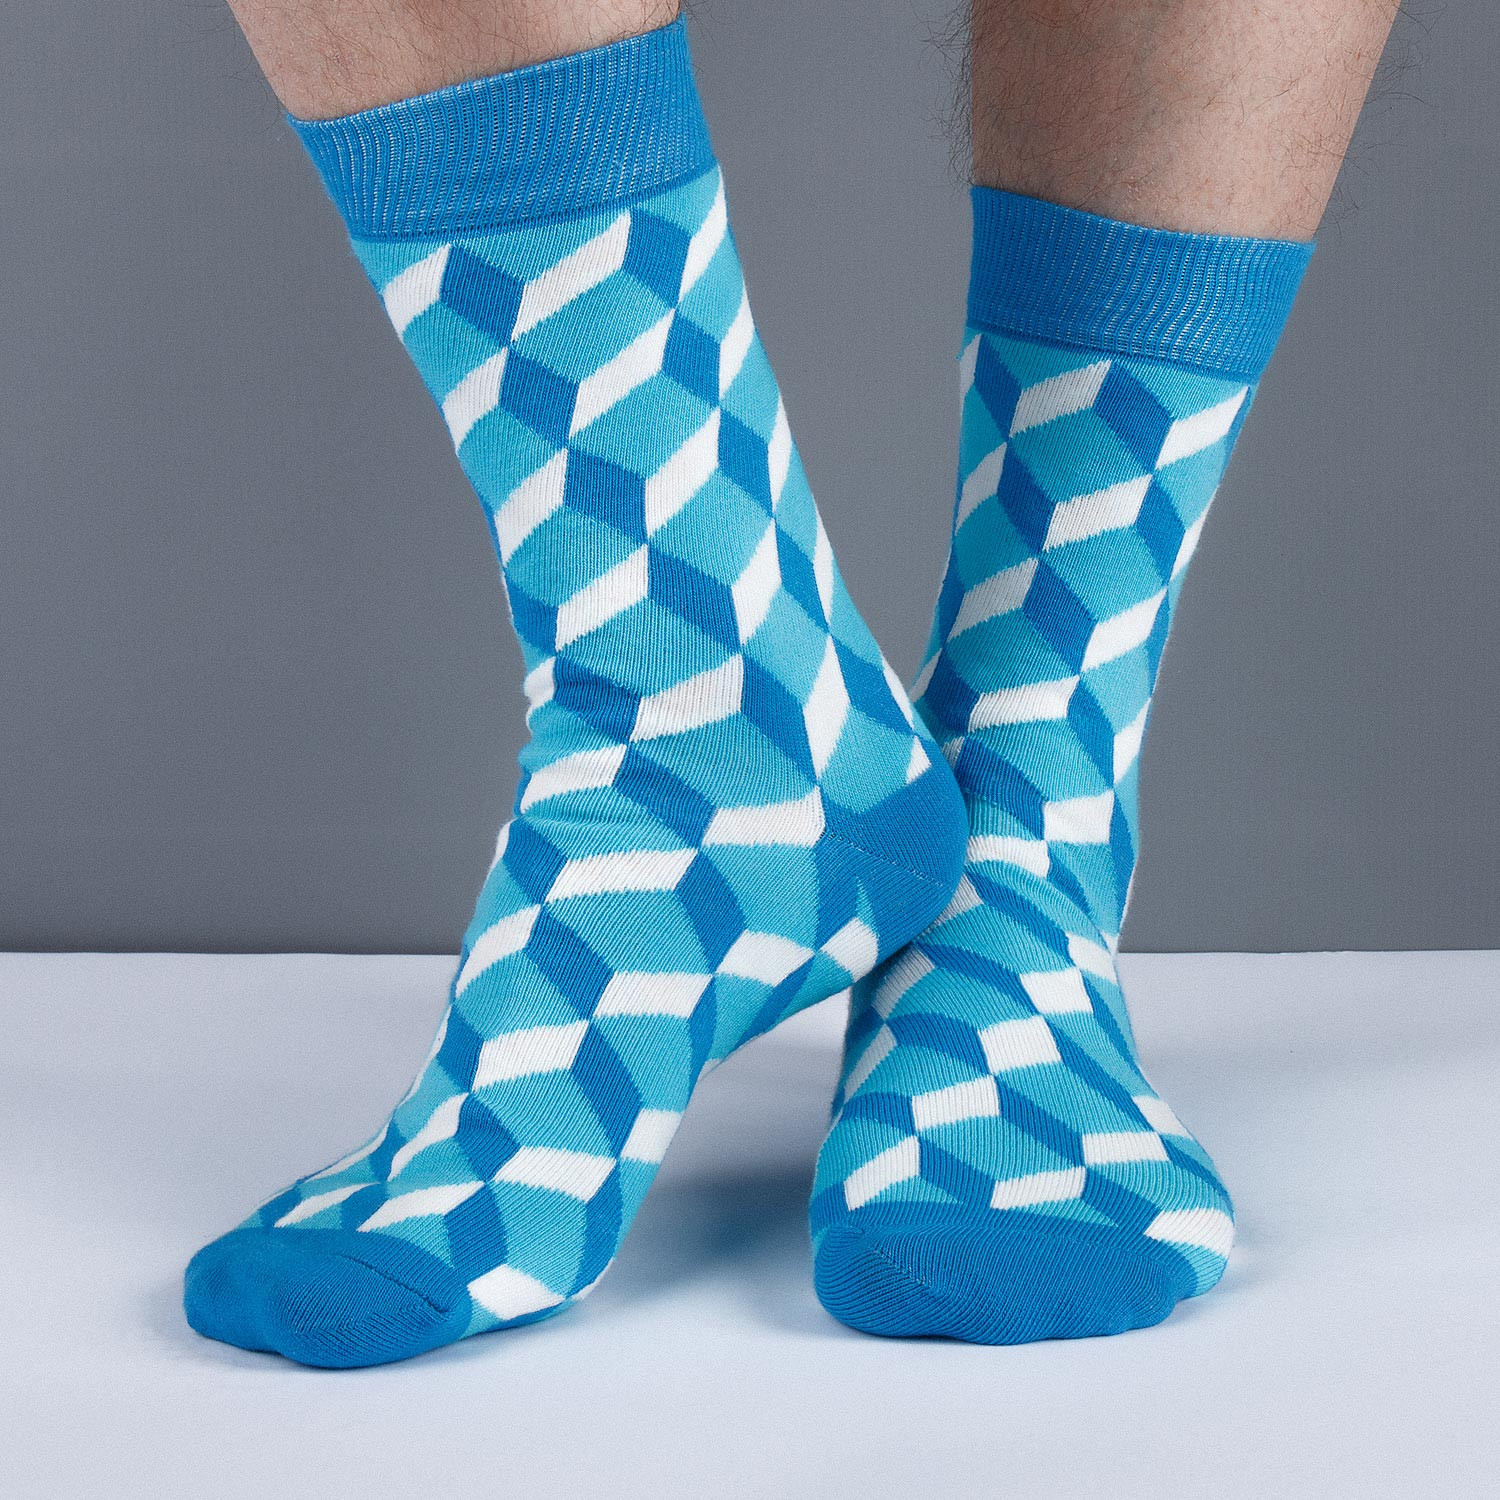 Patterned socks Lovely Pattern socks Blue Cube orange Chili Men socks Lemonsox Of Superb 48 Images Patterned socks